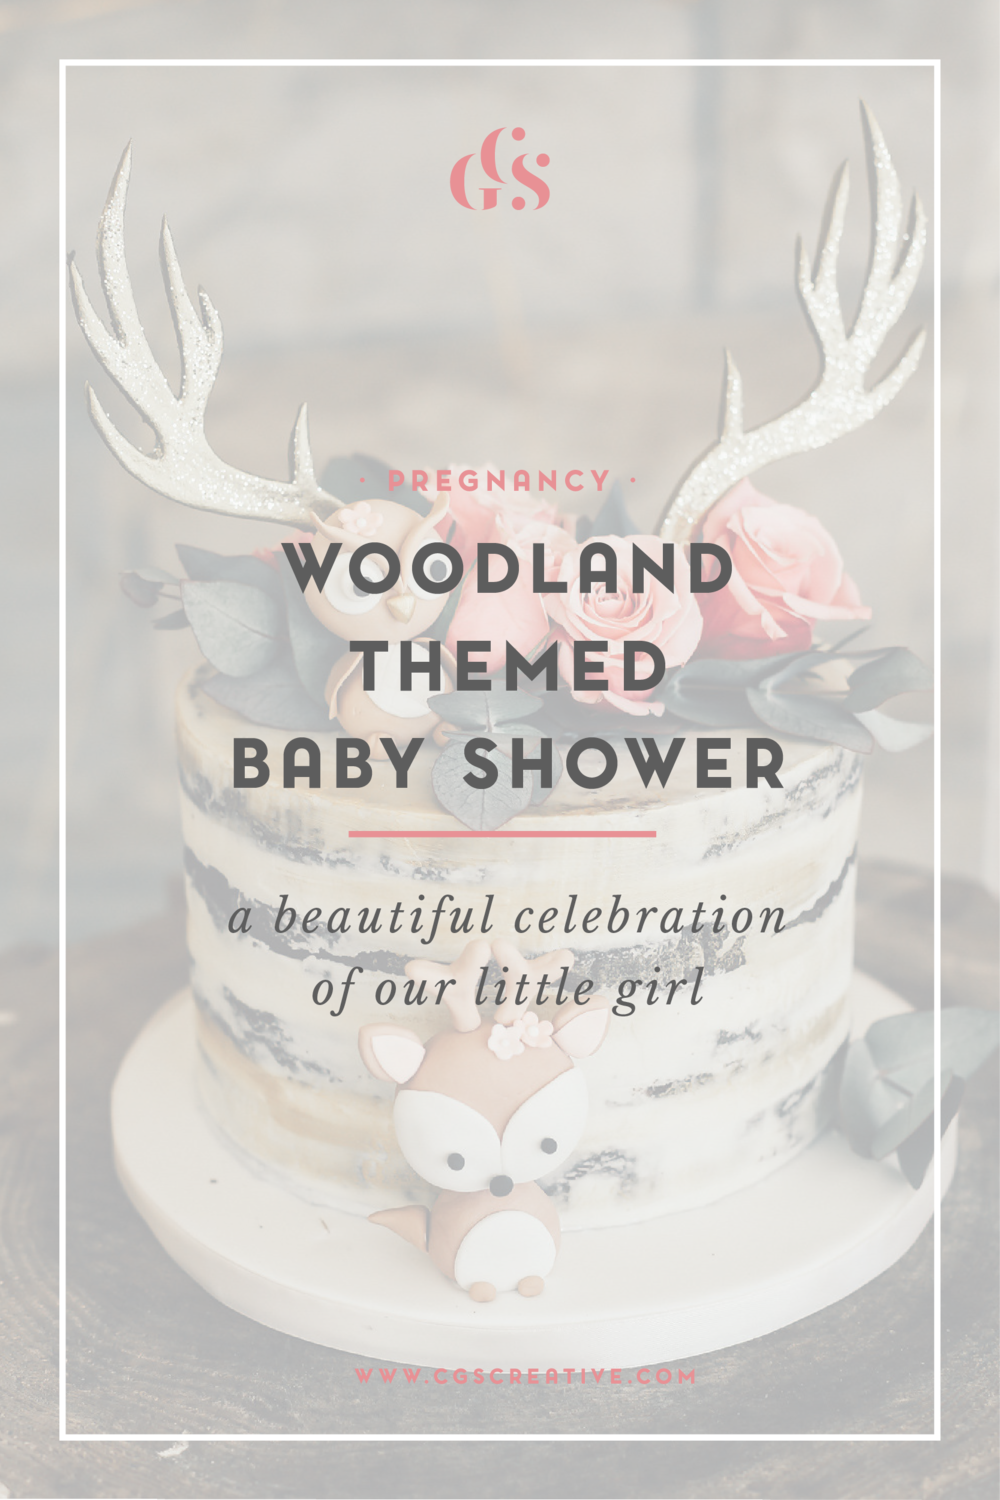 My Woodland Themed Baby Shower In Celebration Of Our Baby Girl